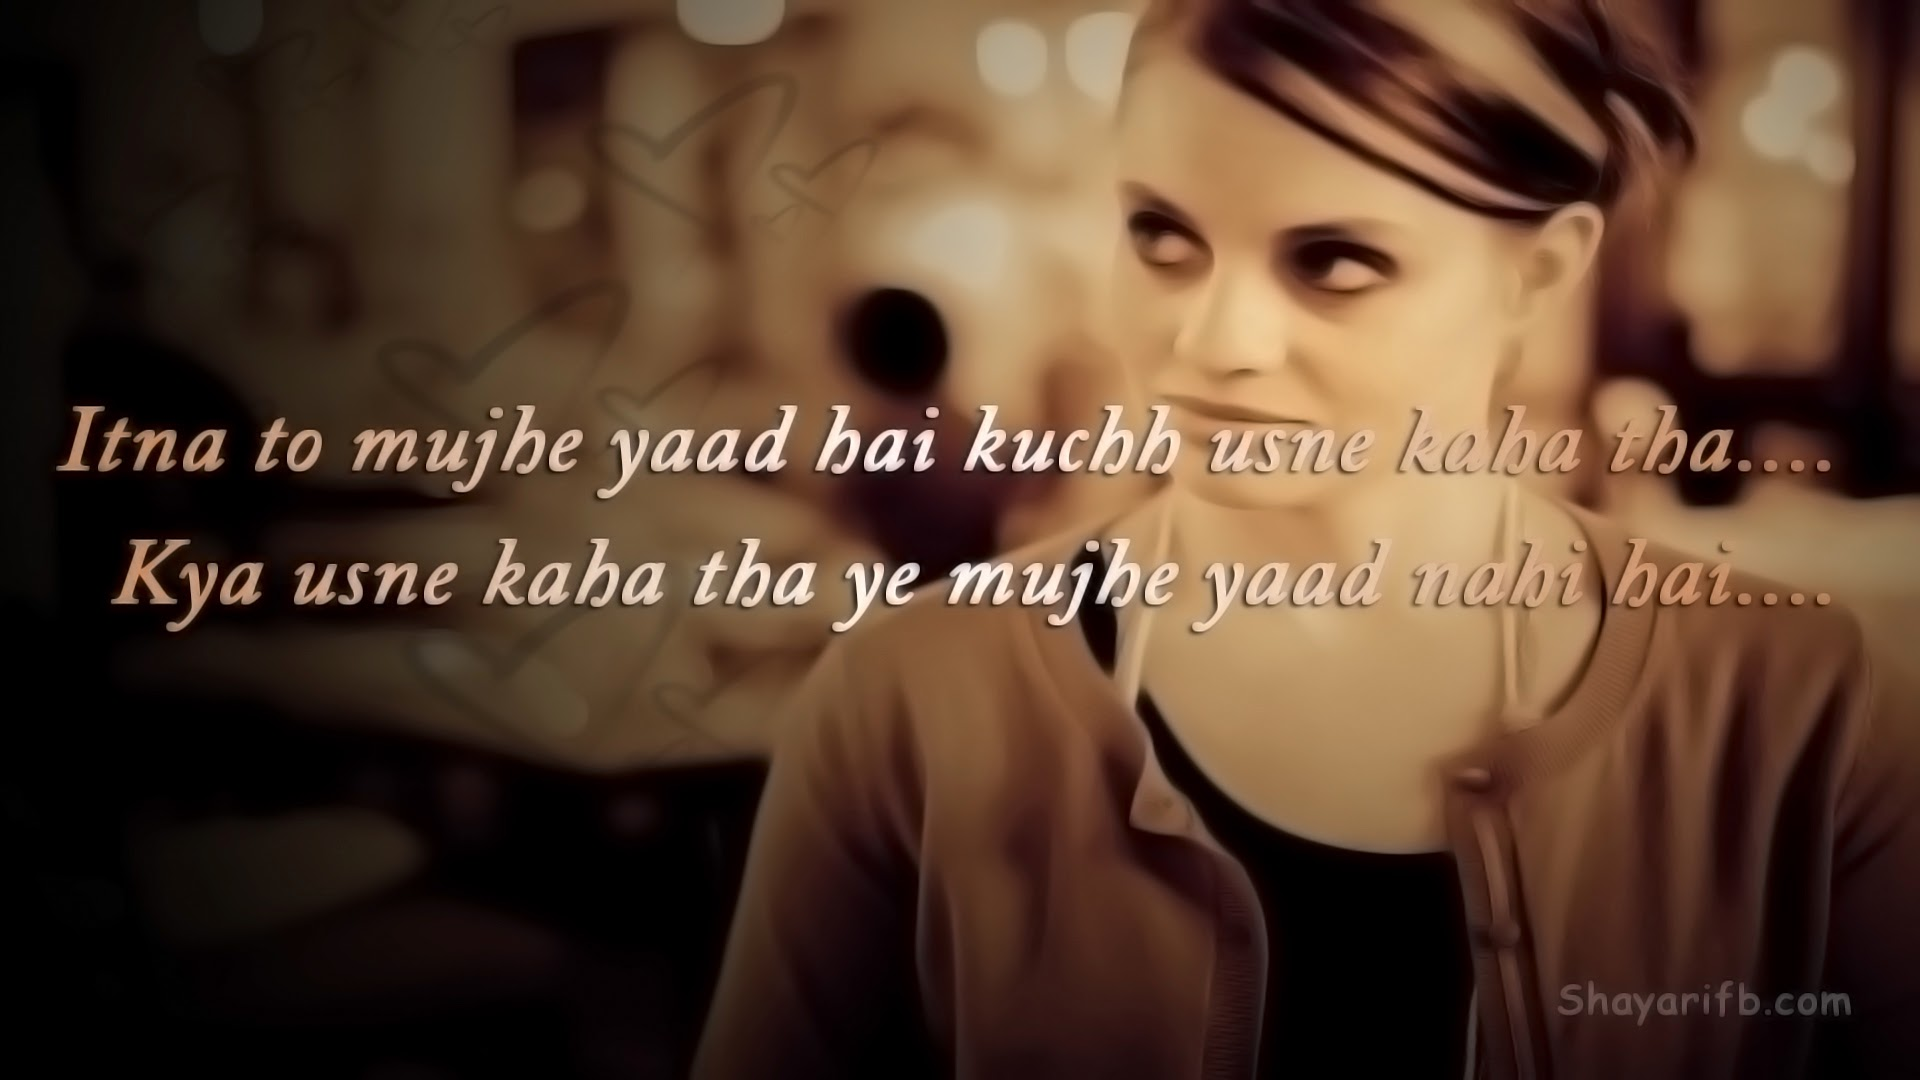 Love Wallpaper And Shayri : Beautiful Hindi Shayari for True Love Wallpapers